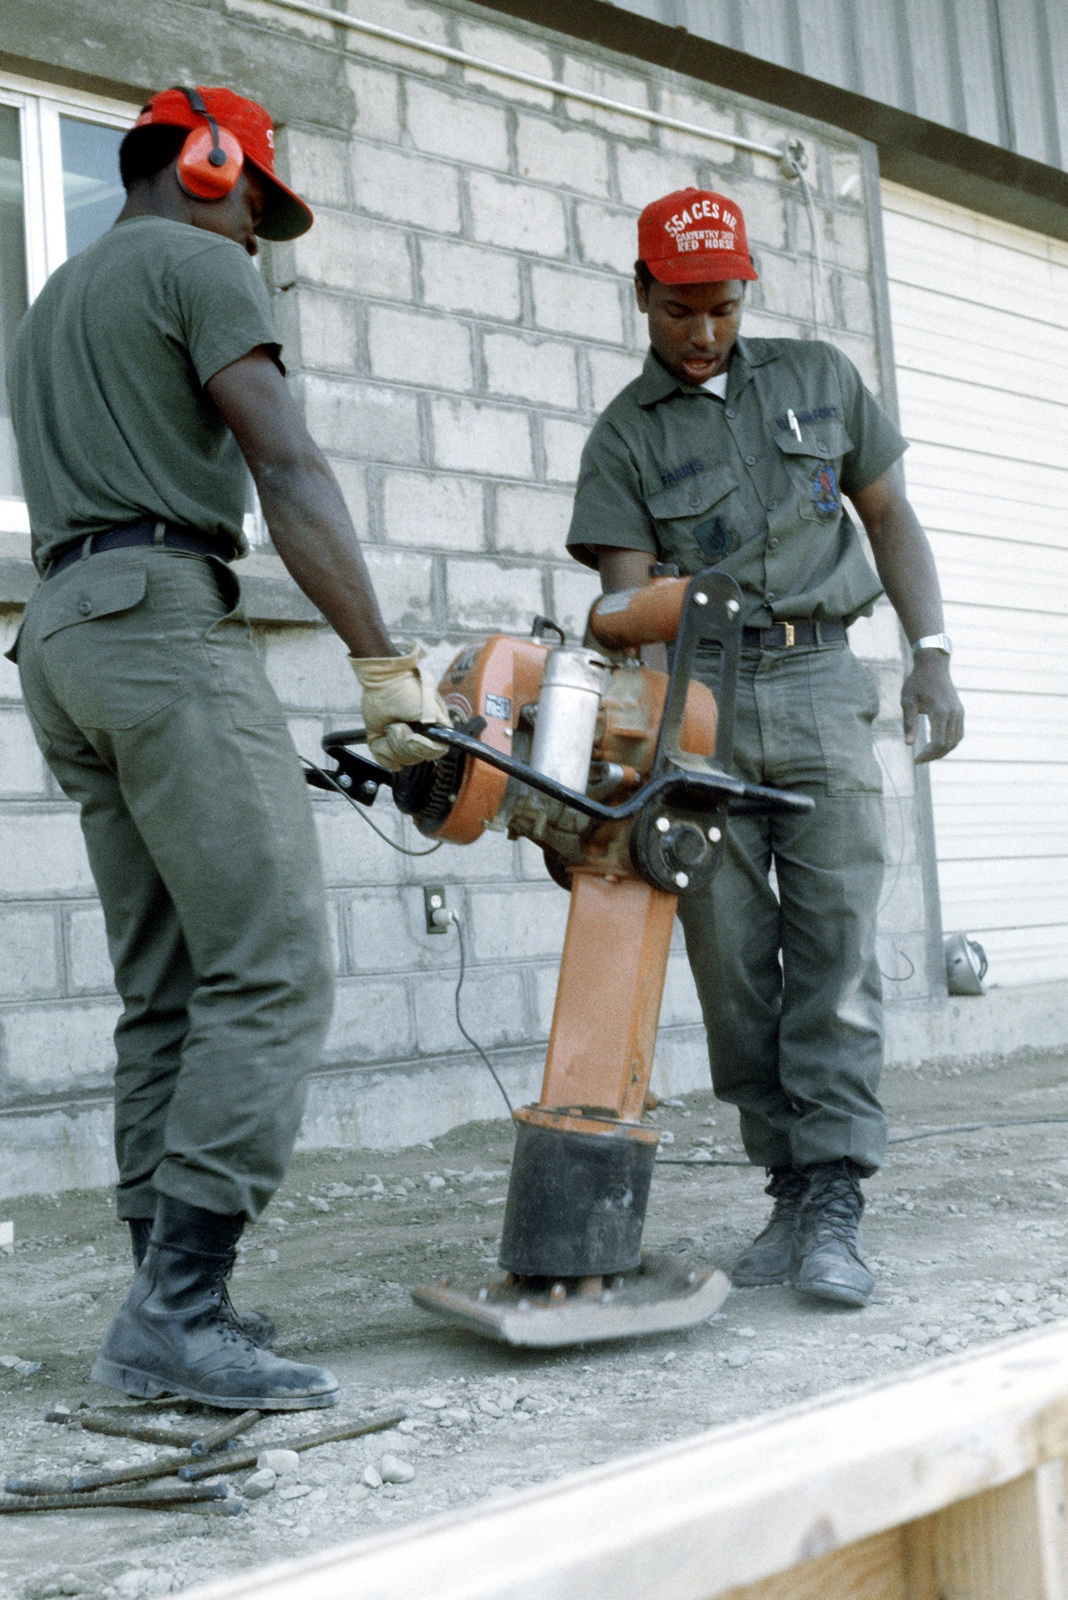 Two members of the 554th Civilian Engineering Squadron (Red Horse), at work during construction of the new commissary